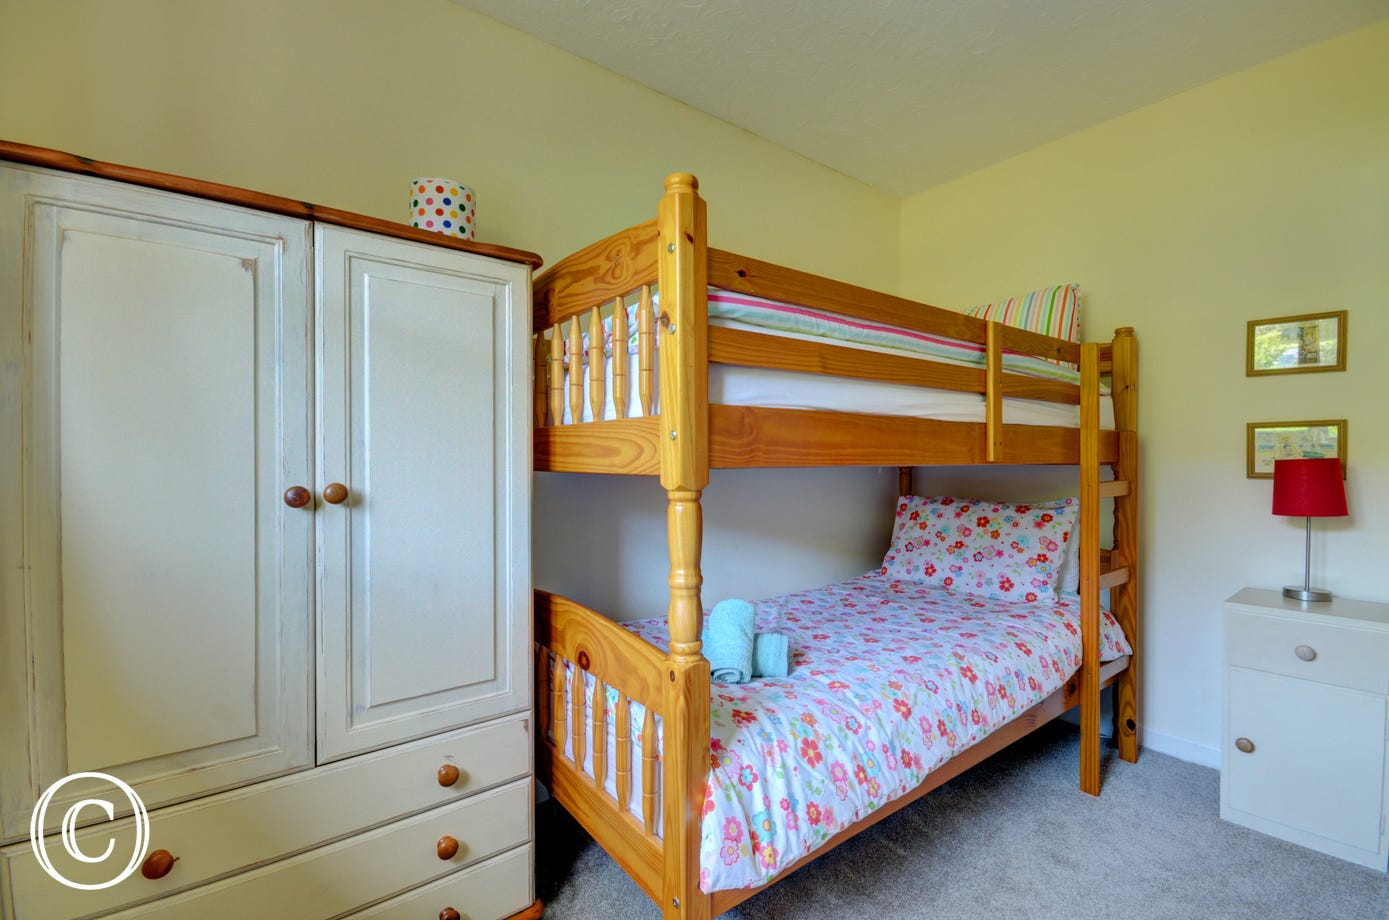 The children will love the bunk bed room!